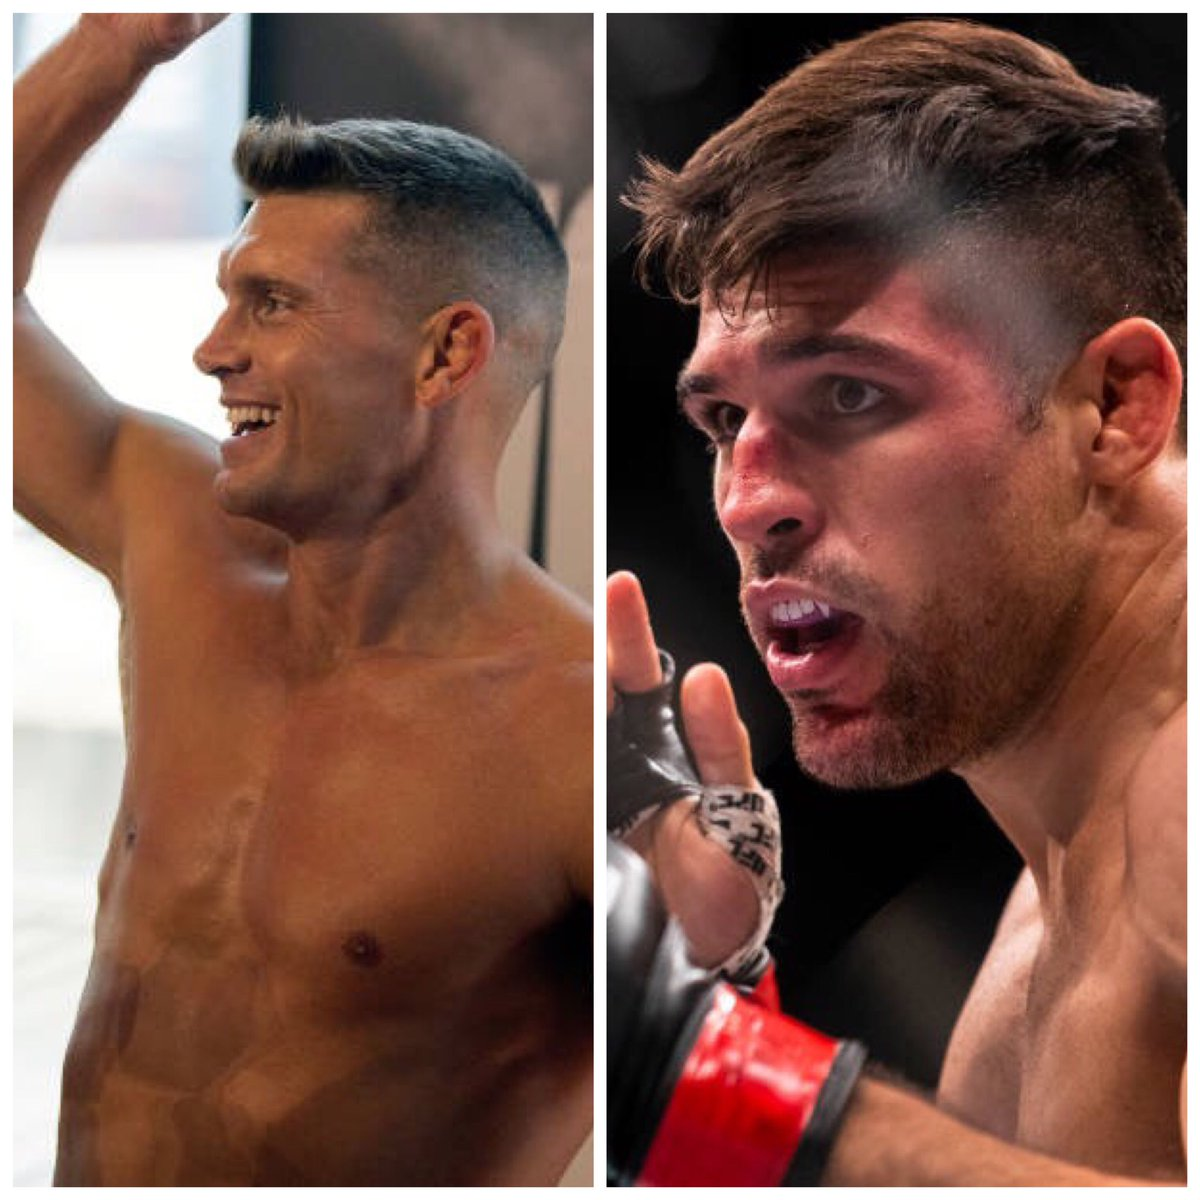 Breaking: Stephen 'Wonderboy' Thompson vs. Vicente Luque has been added to UFC 244 on Nov. 2 in NYC, per Dana White. Wonderboy wanted to return to MSG and Luque, 10-2 in the UFC, hails from nearby New Jersey. Fun matchup at 170. <br>http://pic.twitter.com/Ujtt3HvcVb